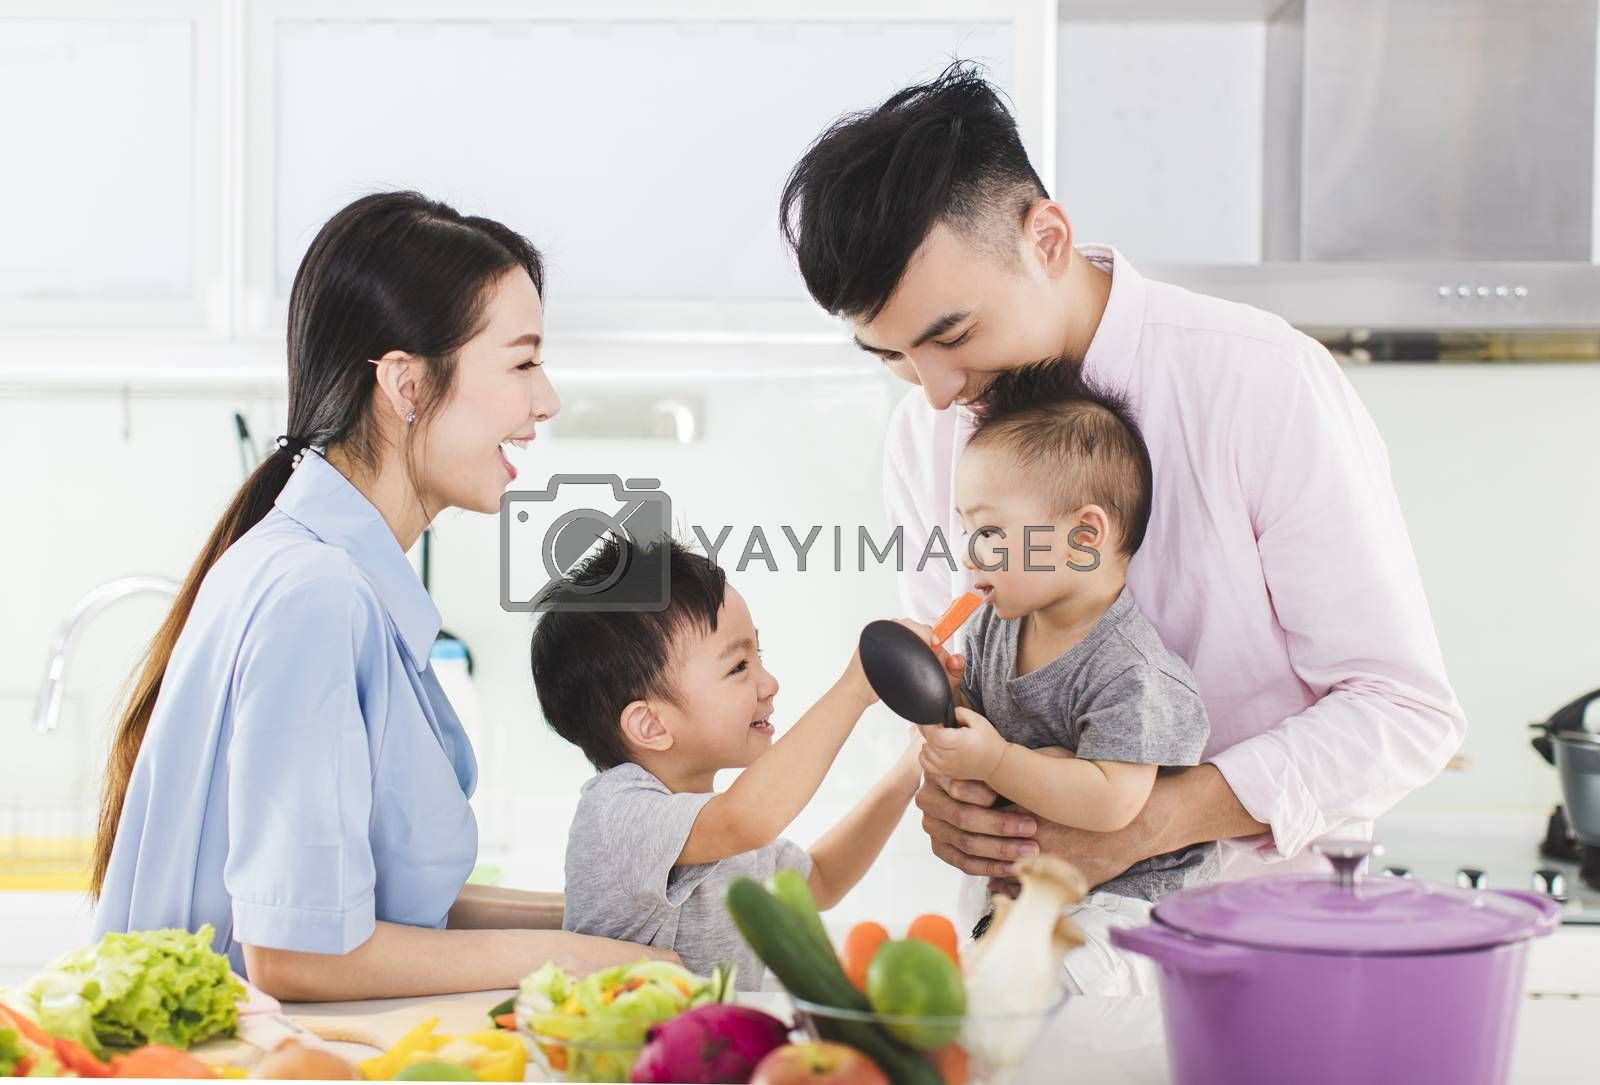 parent and boy feeding son a piece of  carrot in kitchen